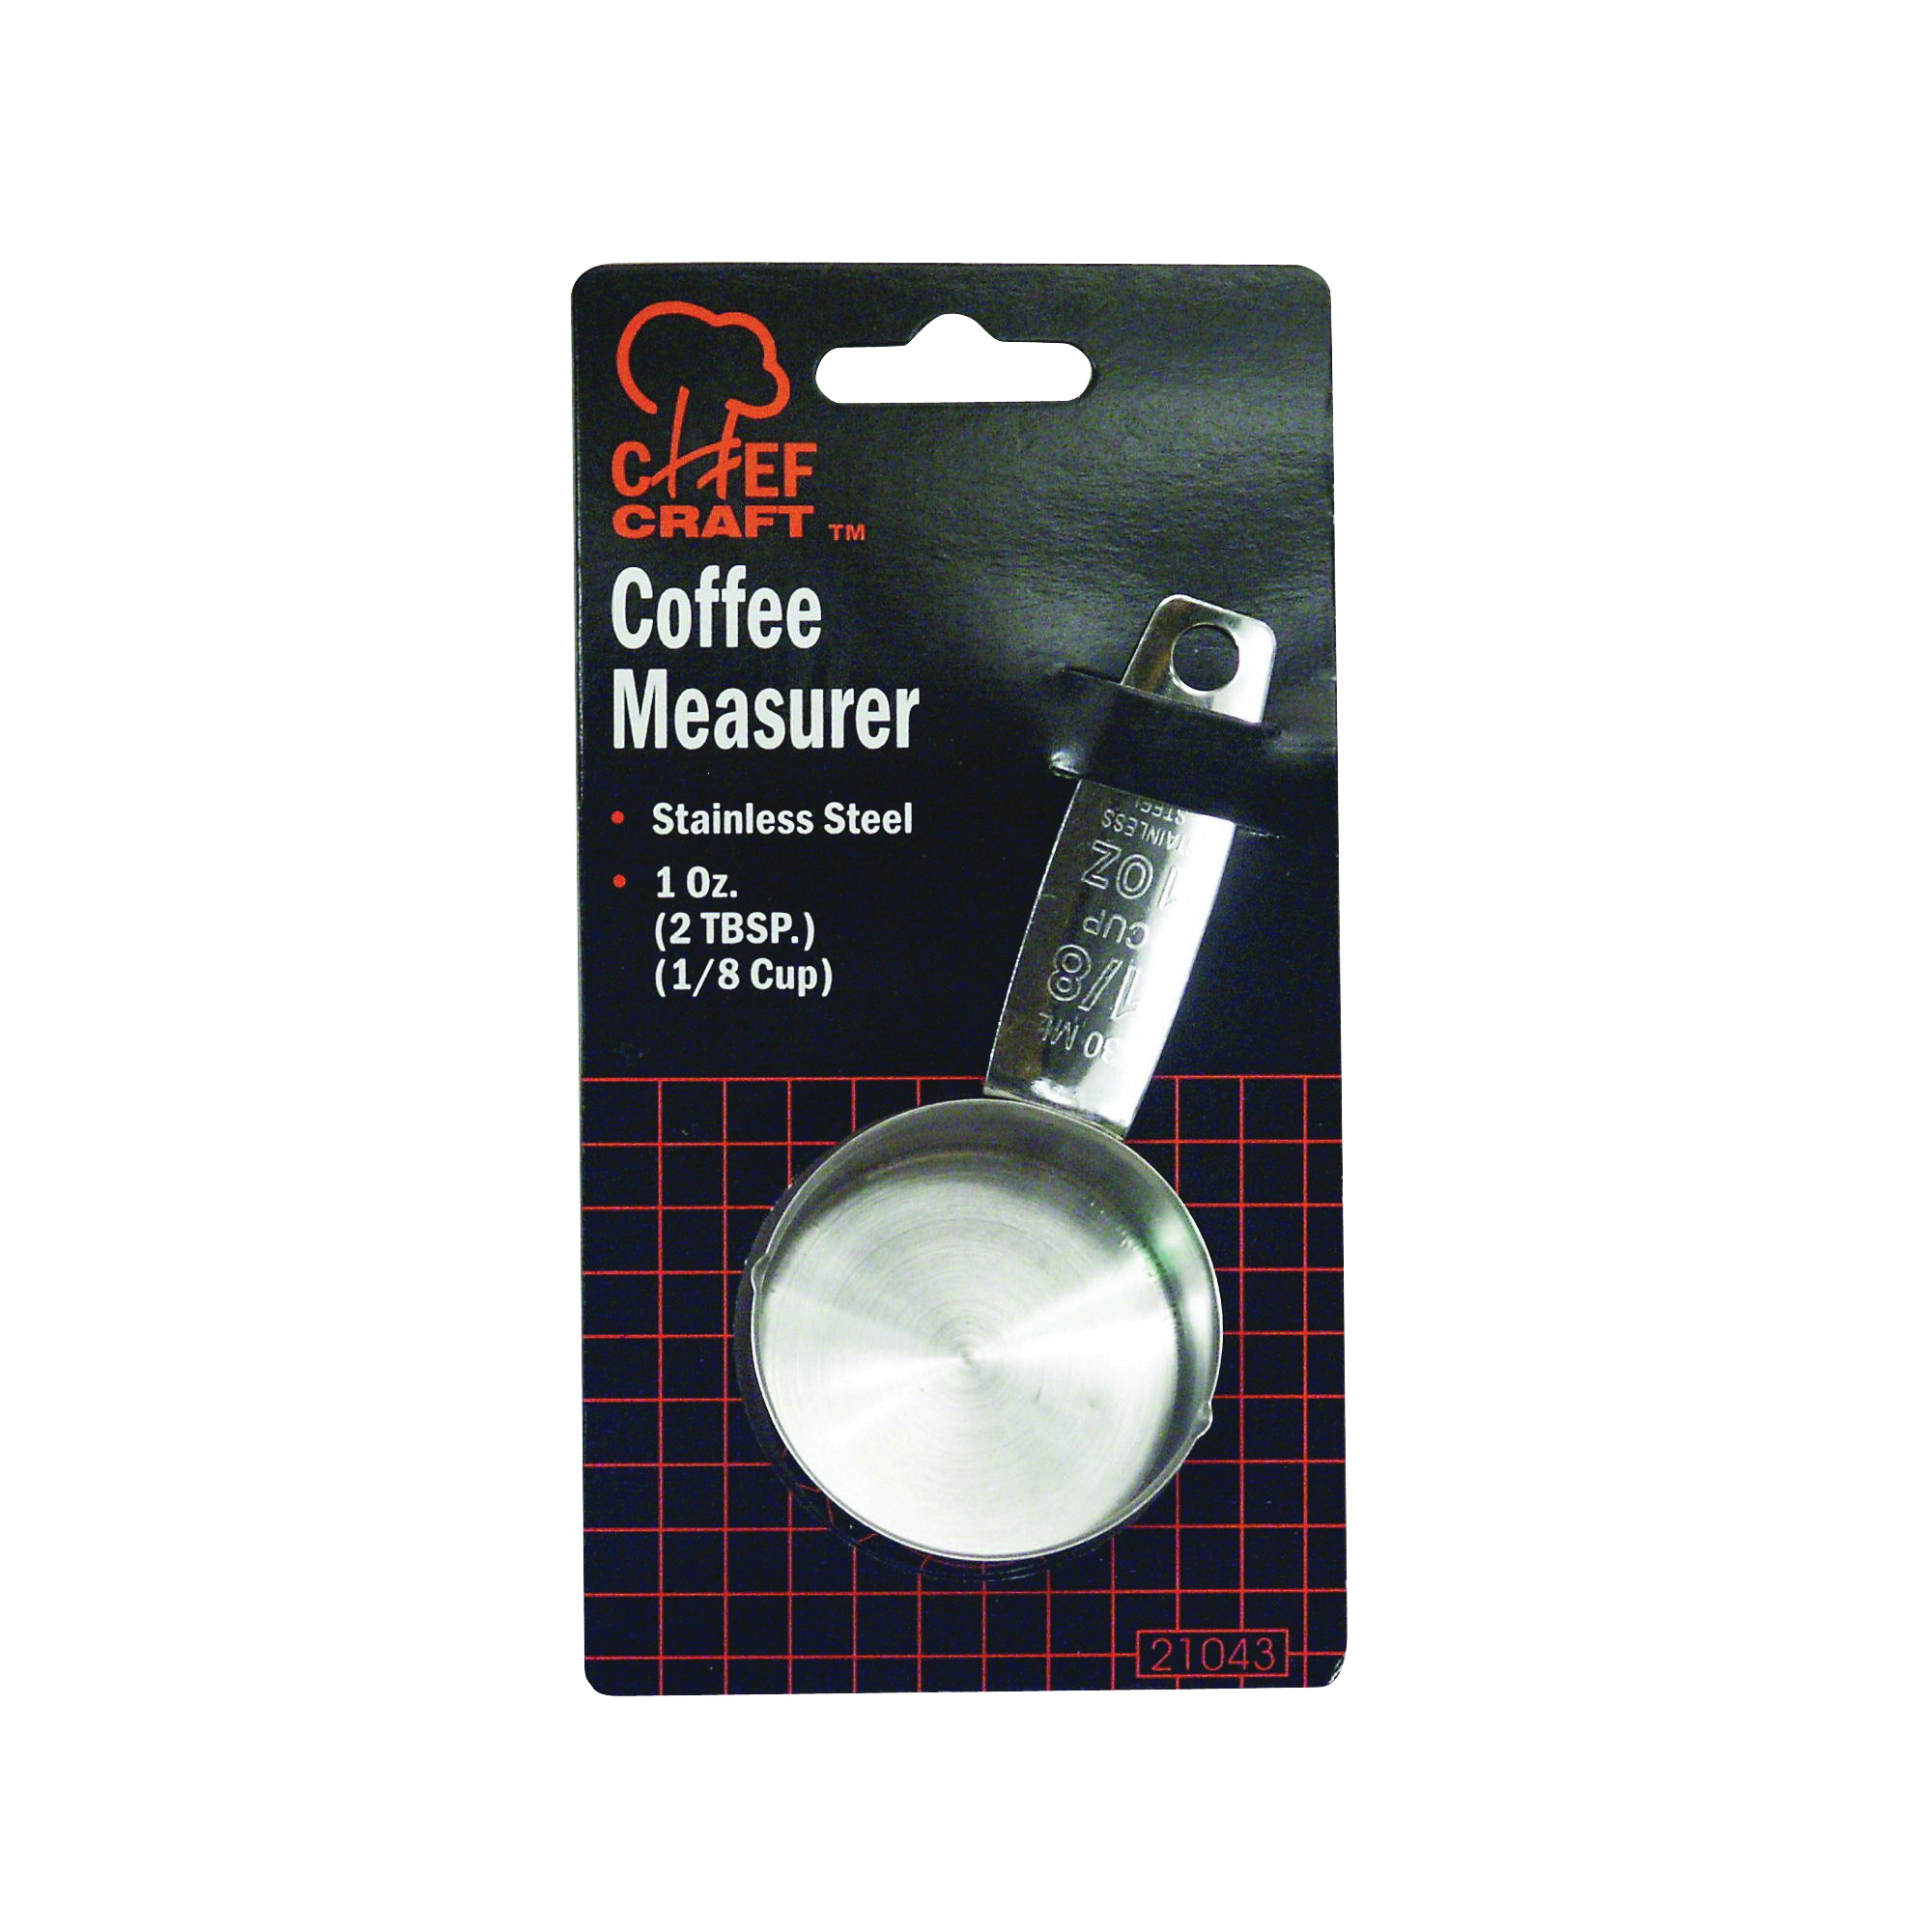 Picture of CHEF CRAFT 21043 Coffee Measure, 1 oz Capacity, Metric Graduation, Stainless Steel, Silver